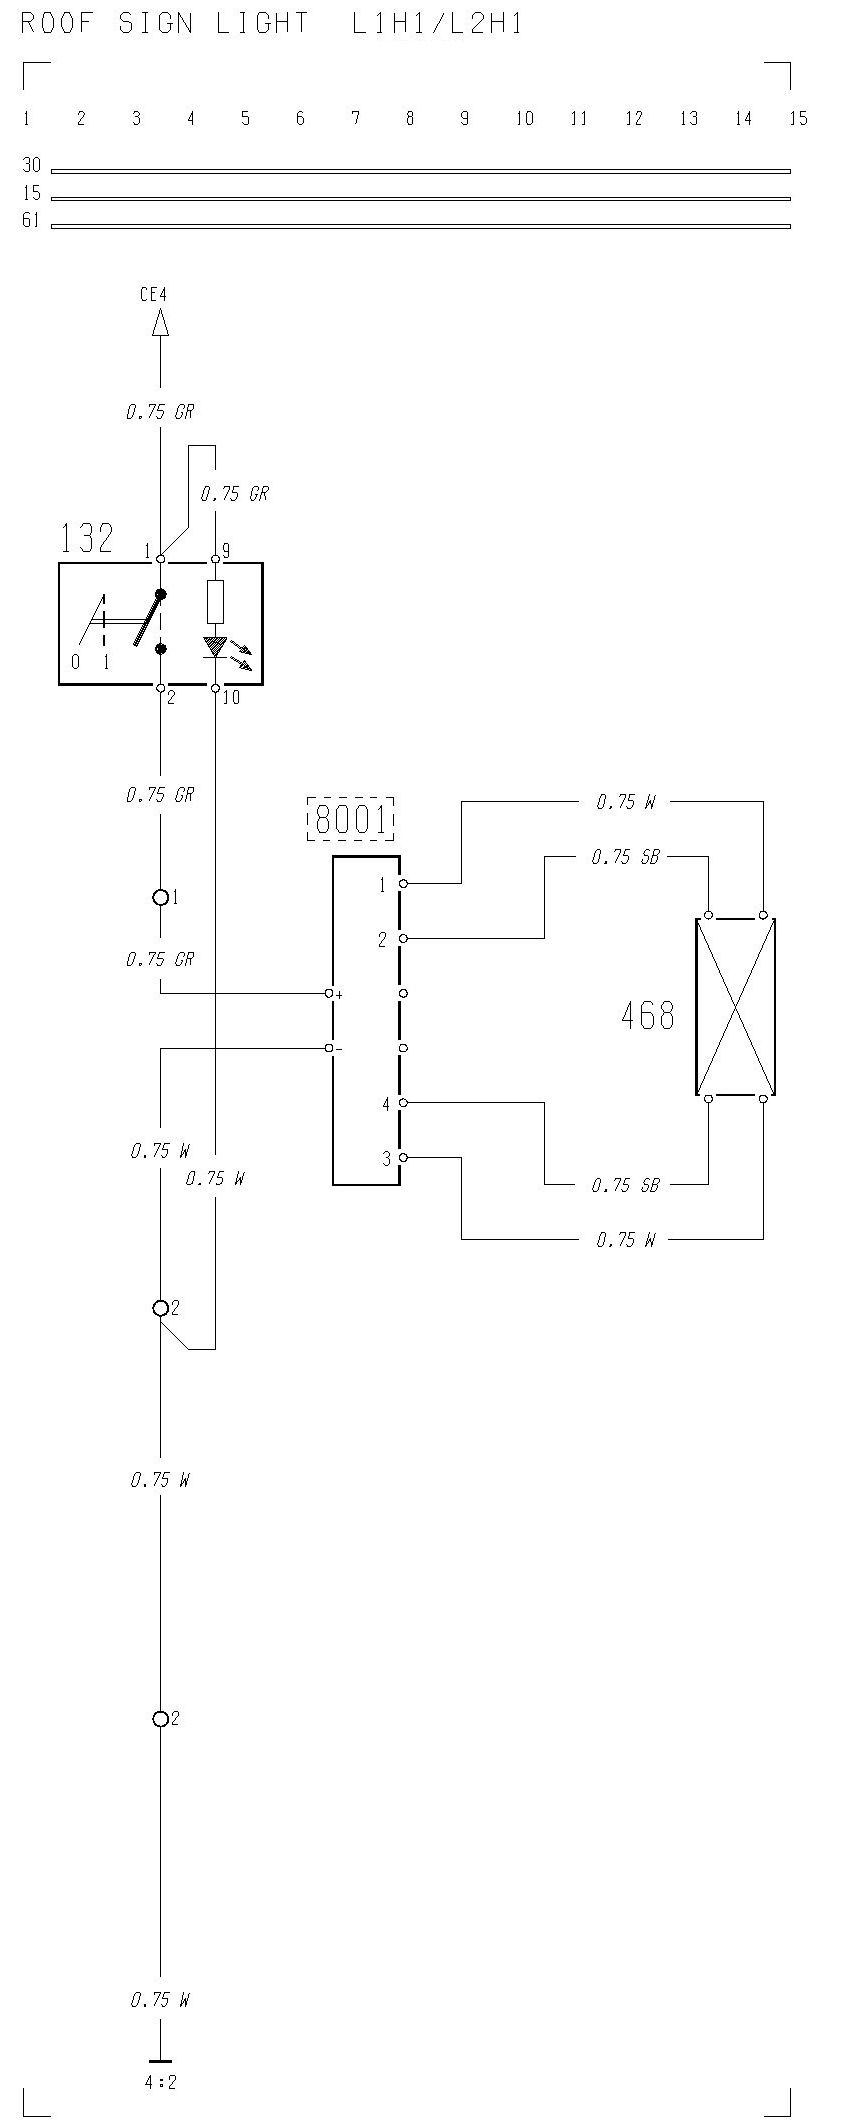 wiring diagram volvo l60e • rj25 wiring example of data flow diagram, Wiring diagram